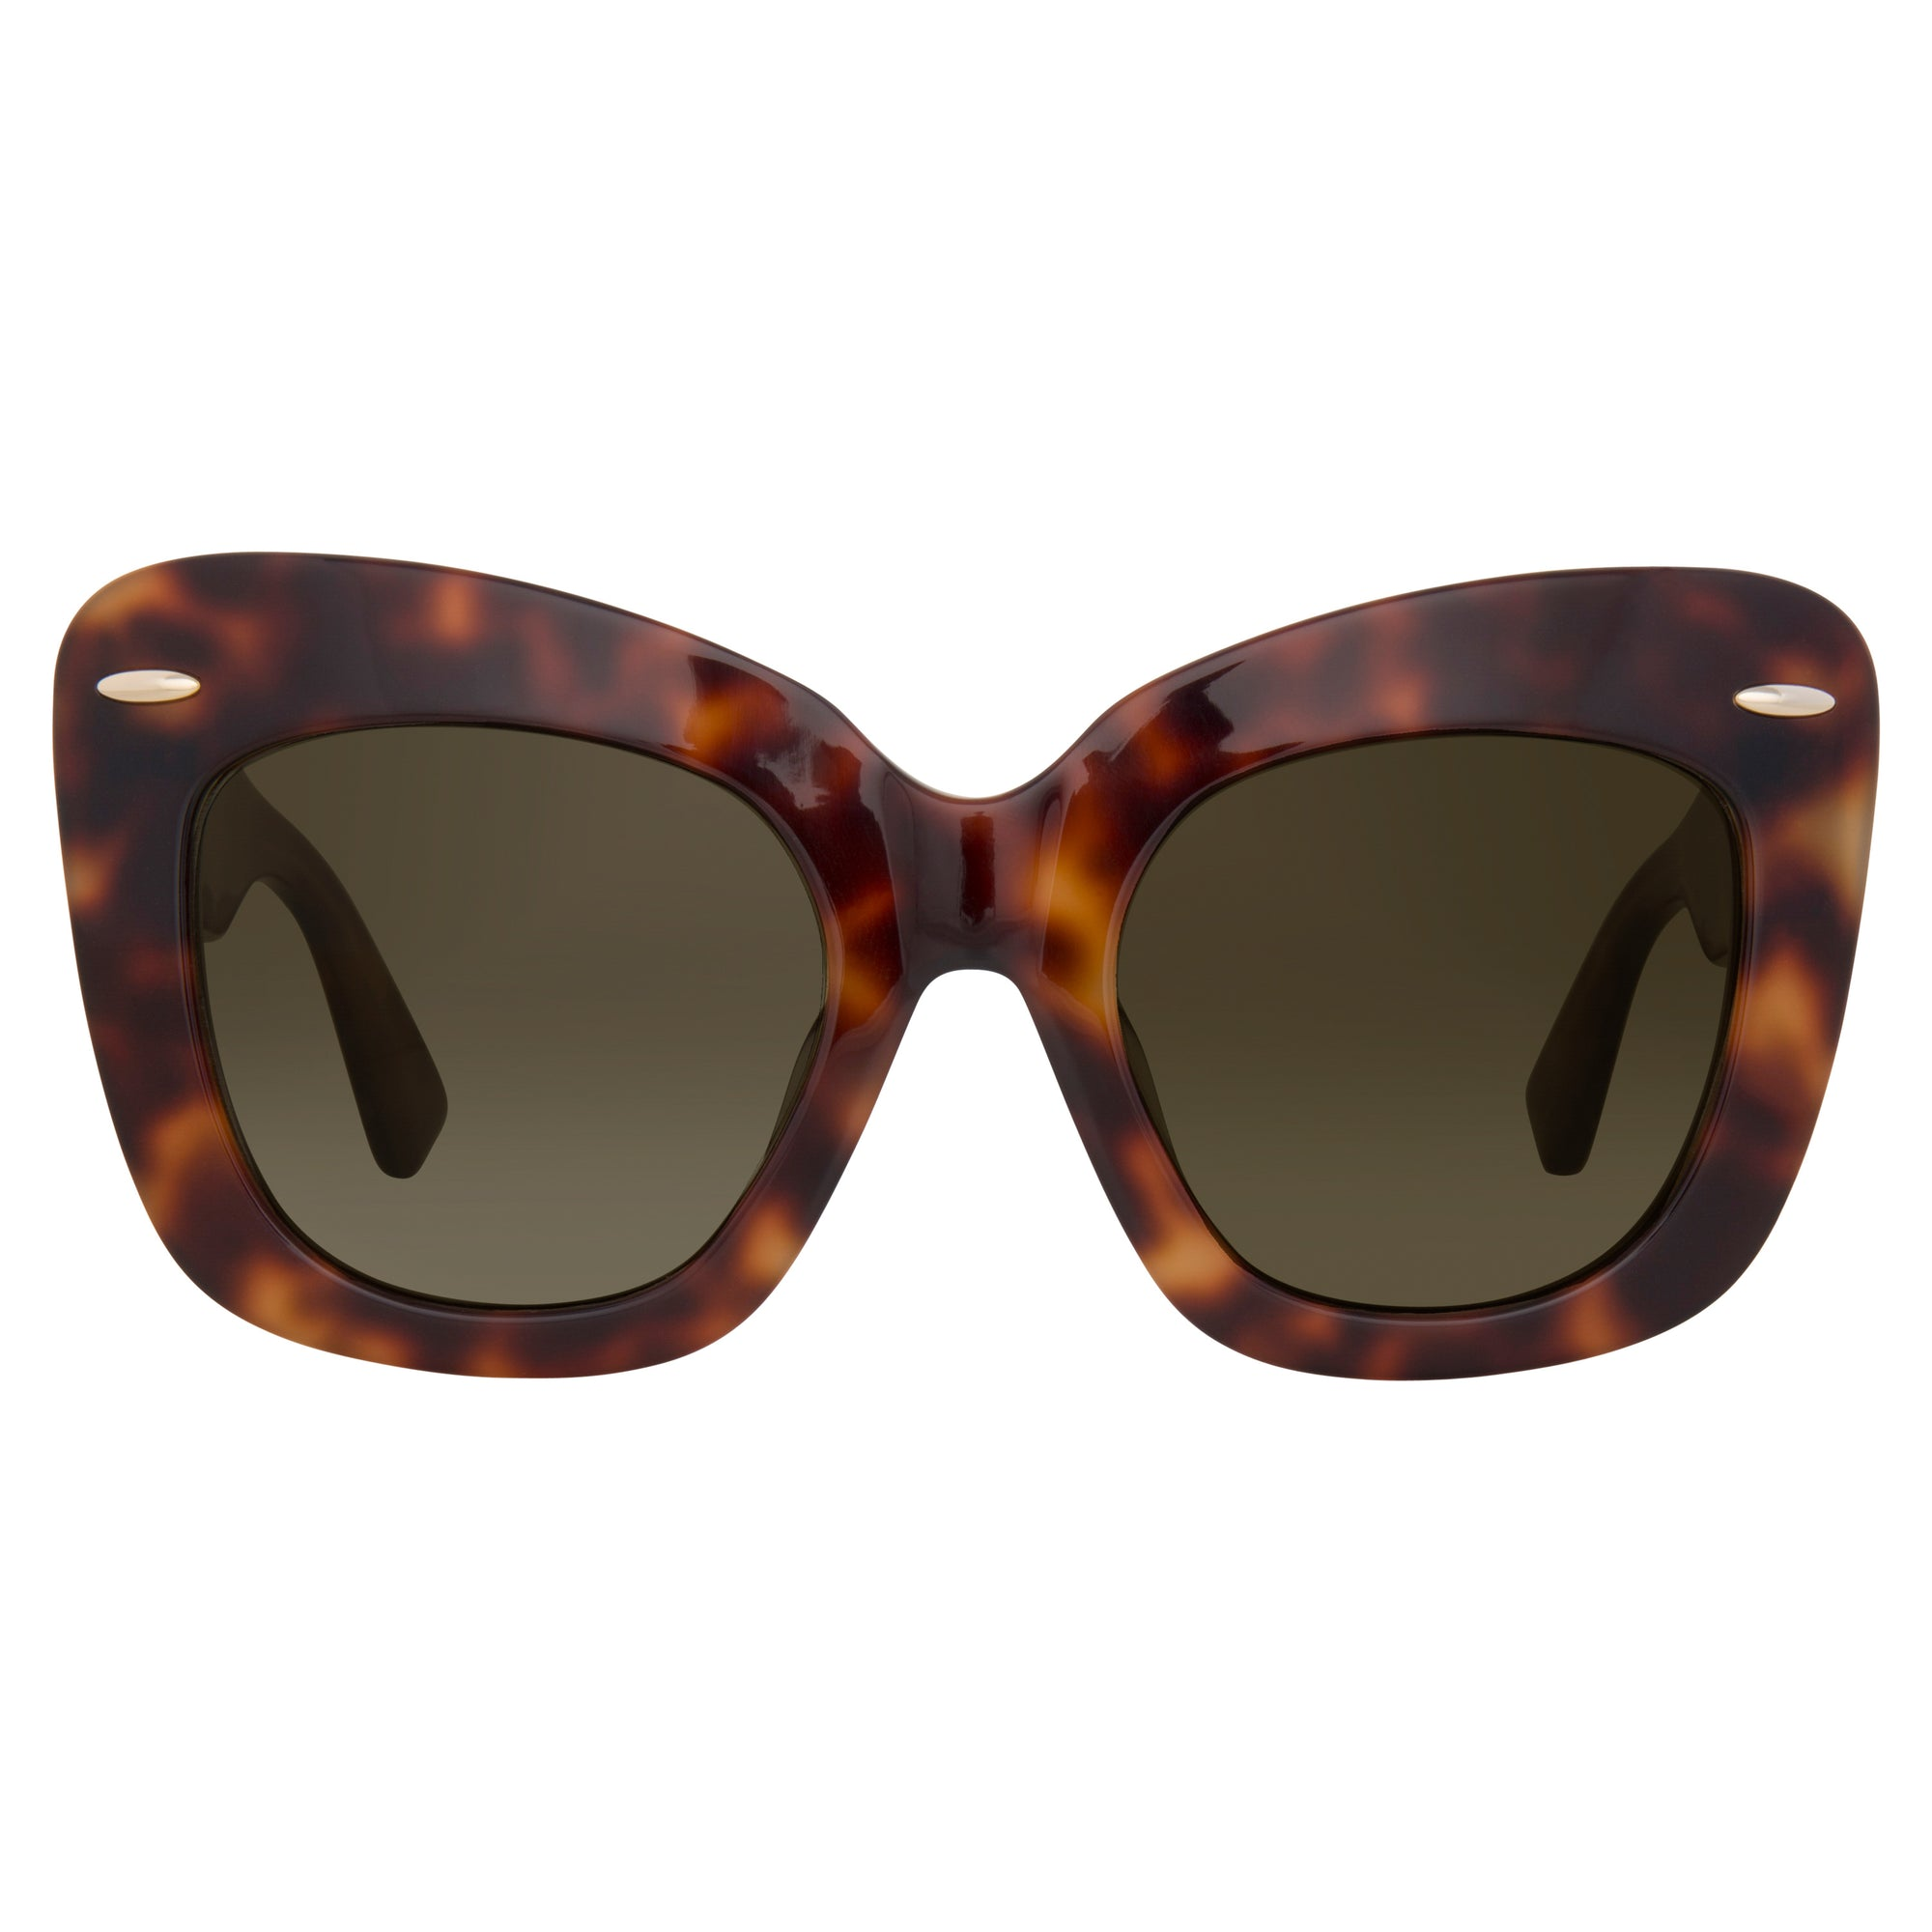 Erdem Sunglasses Cat Eye Tortoise Shell and Grey